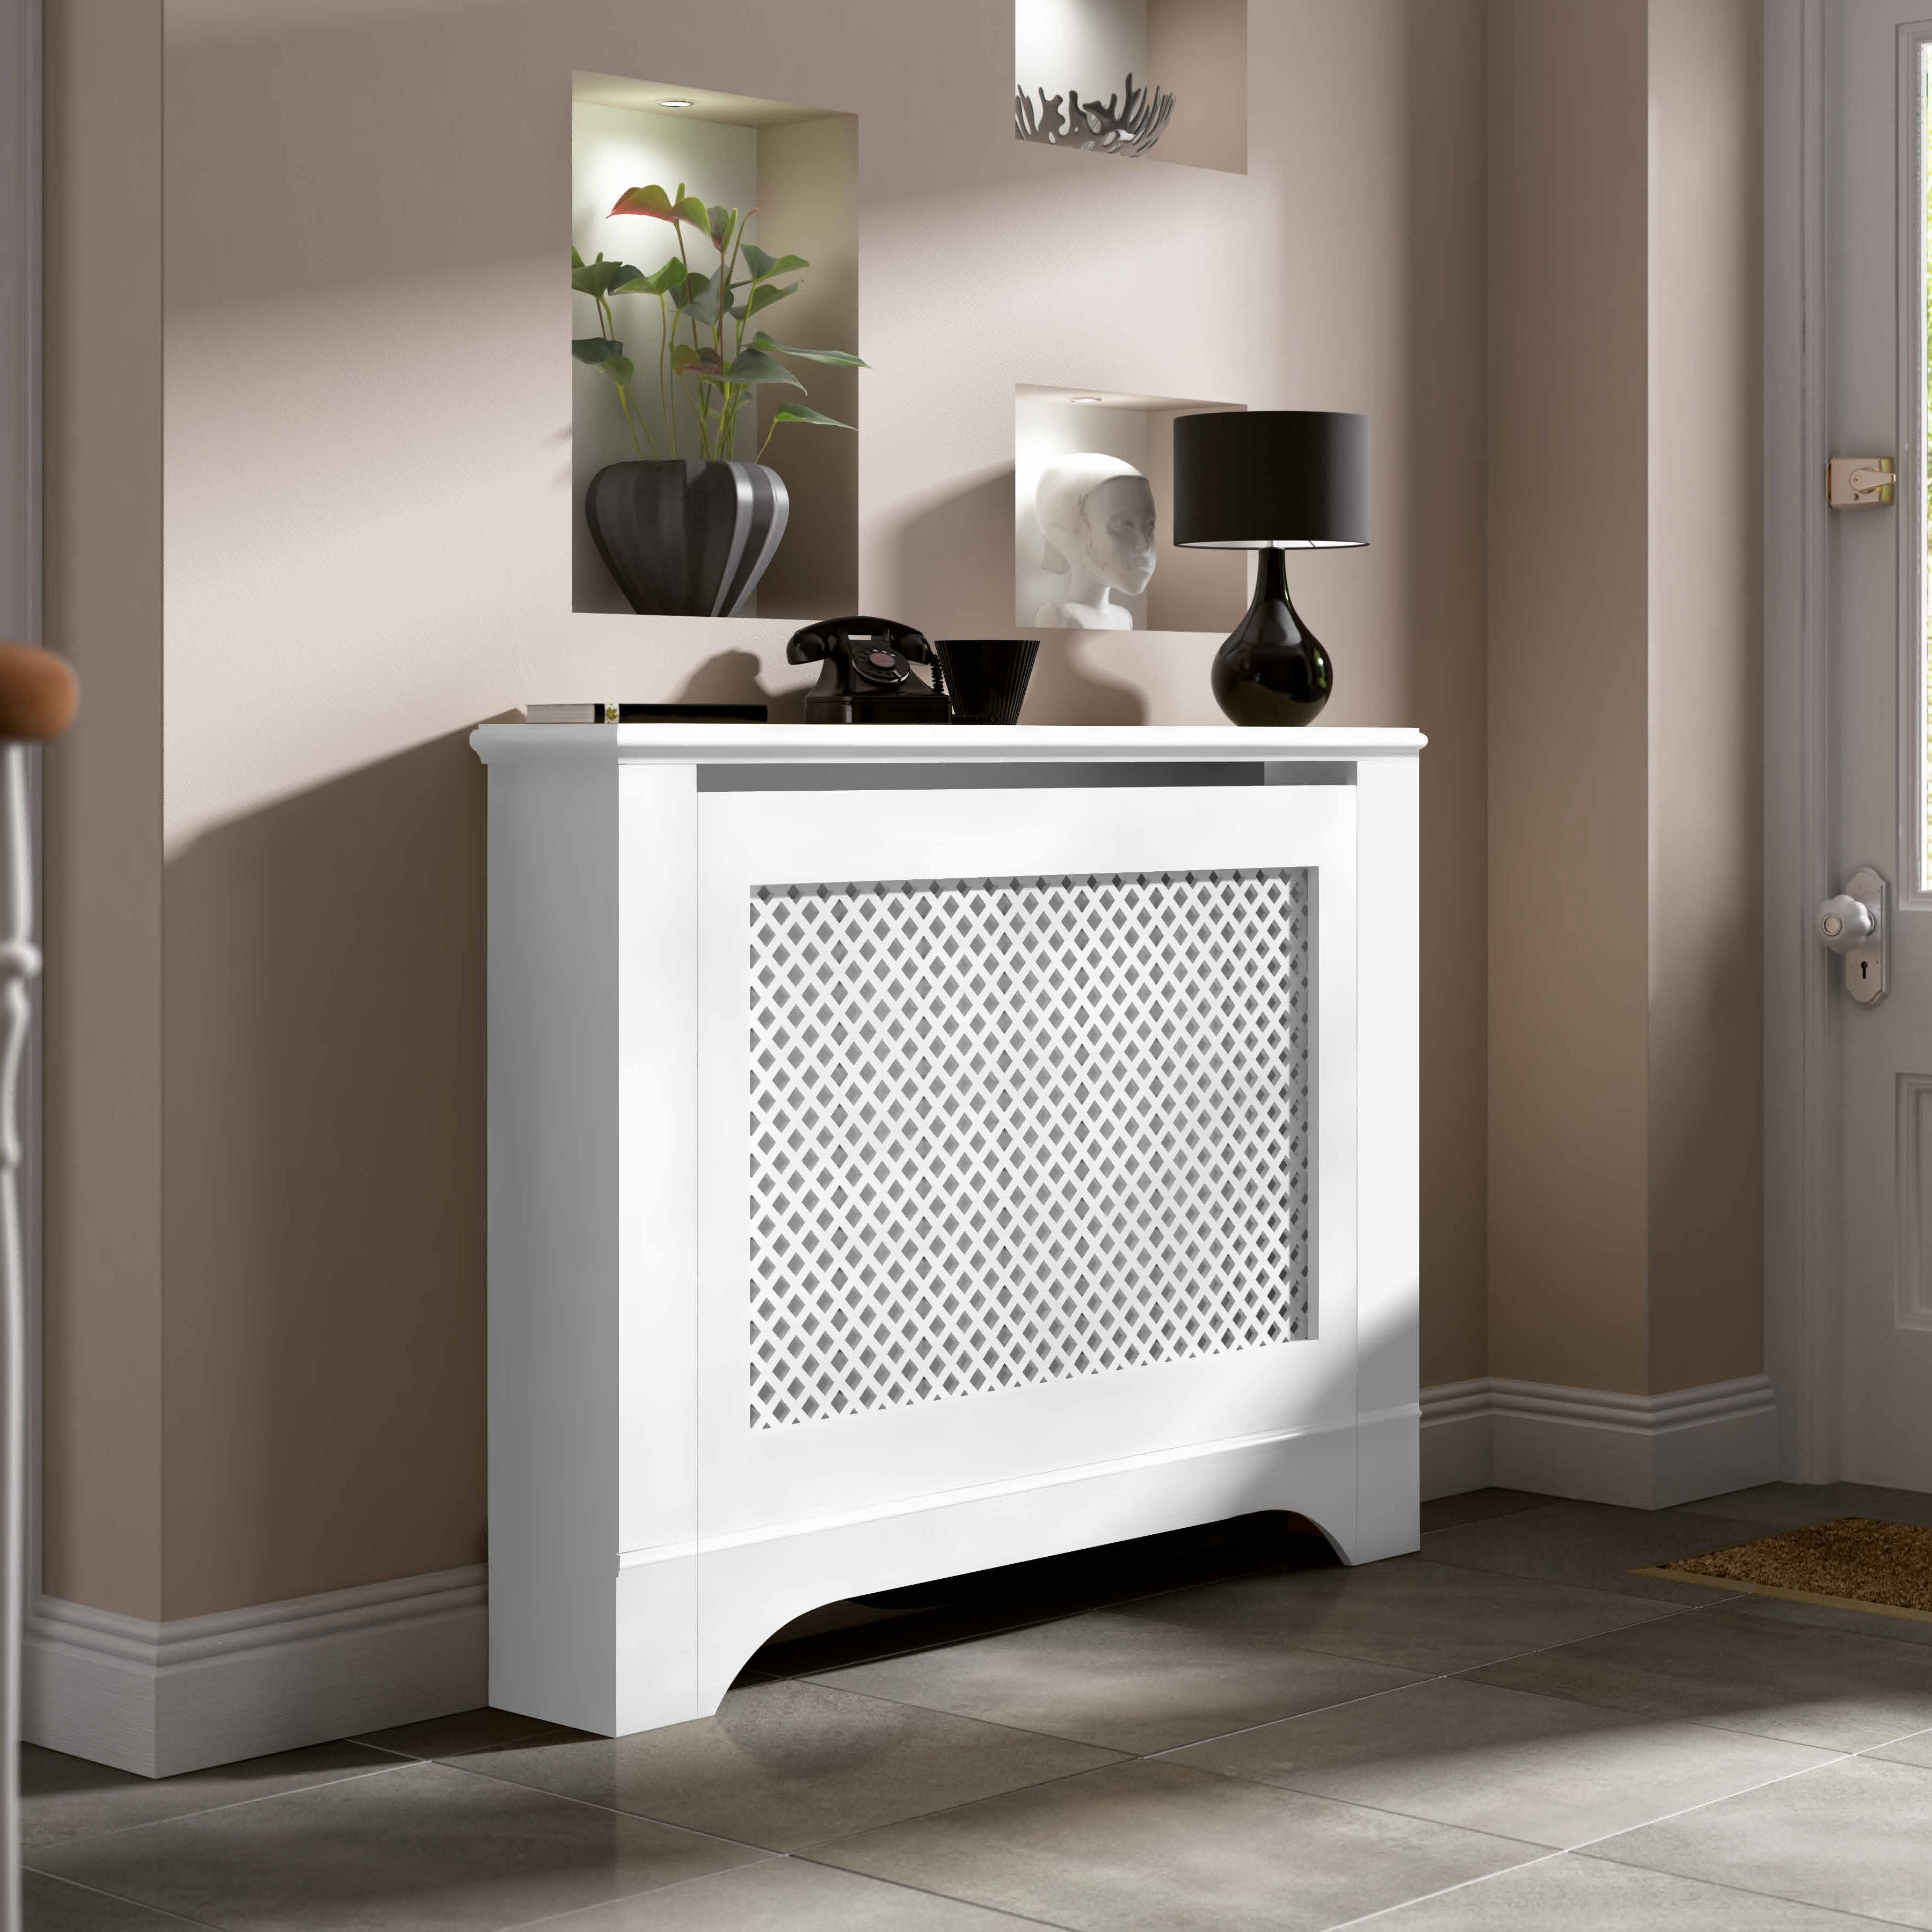 Mayfair Medium White Painted Radiator Cover Departments Diy At B Q